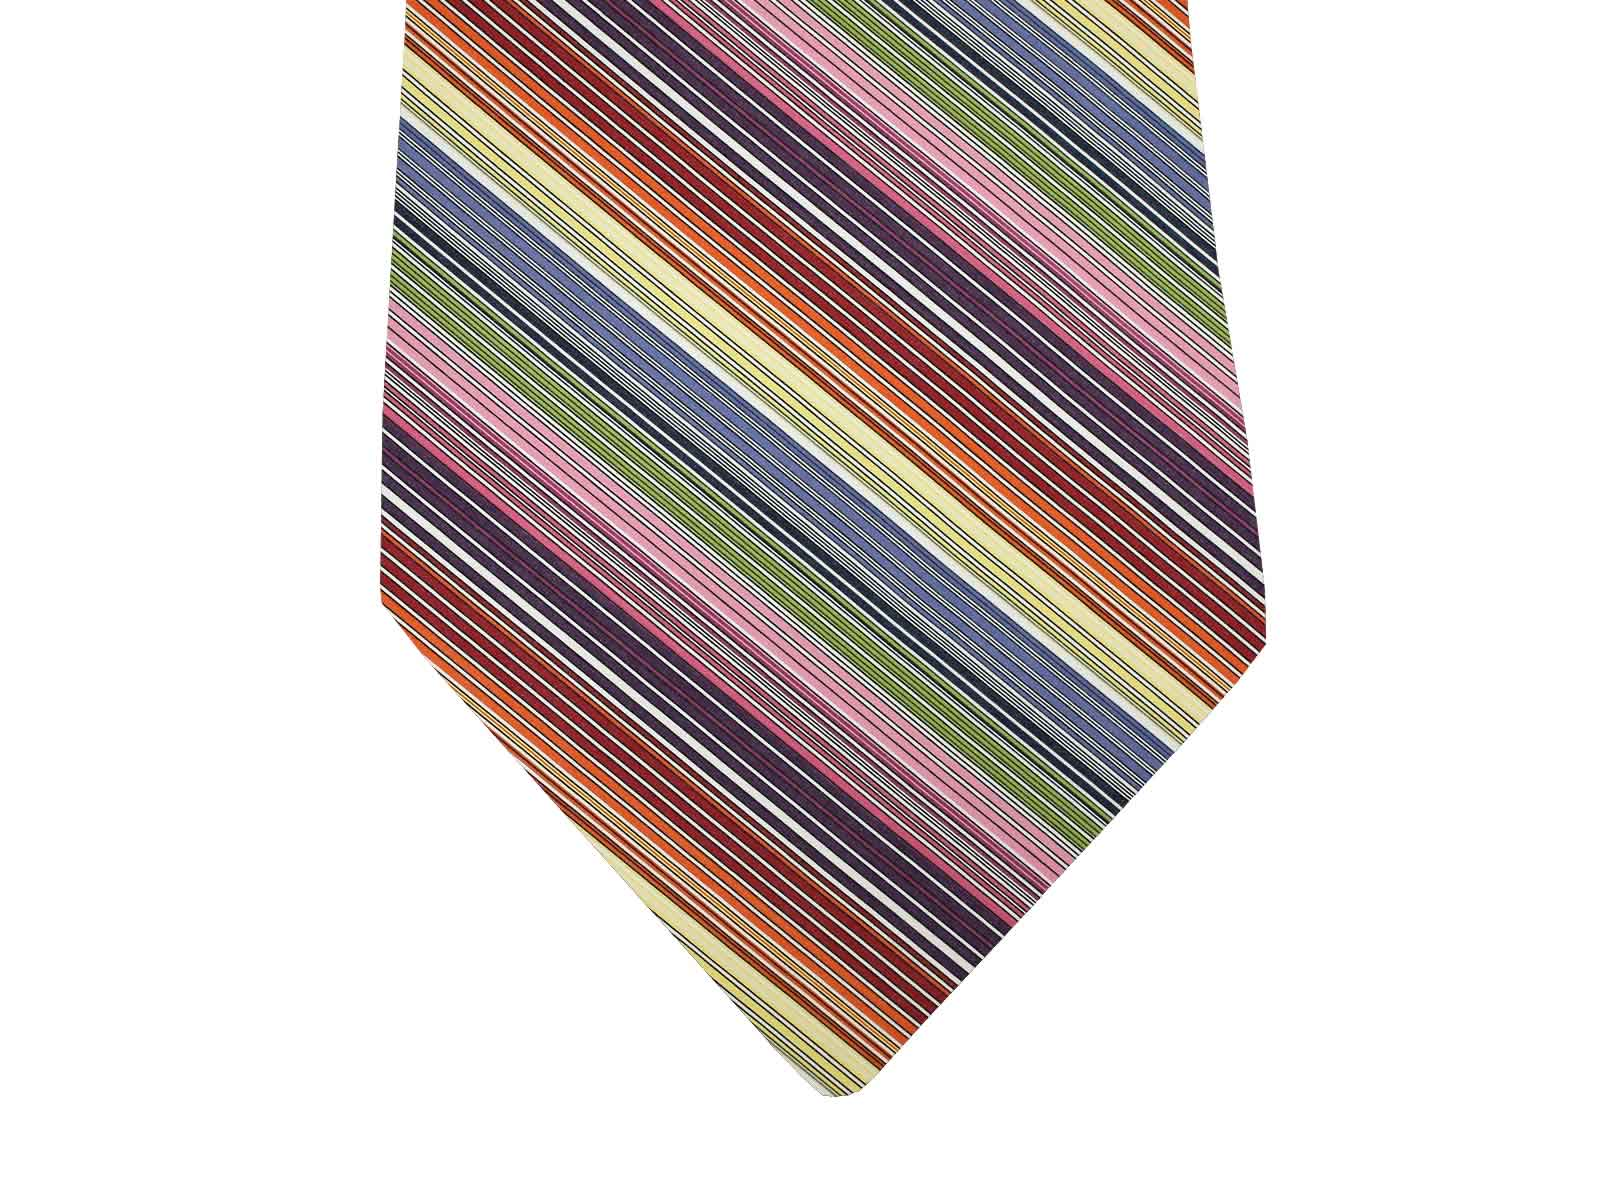 Striped Tie with narrow rainbowstripes, white